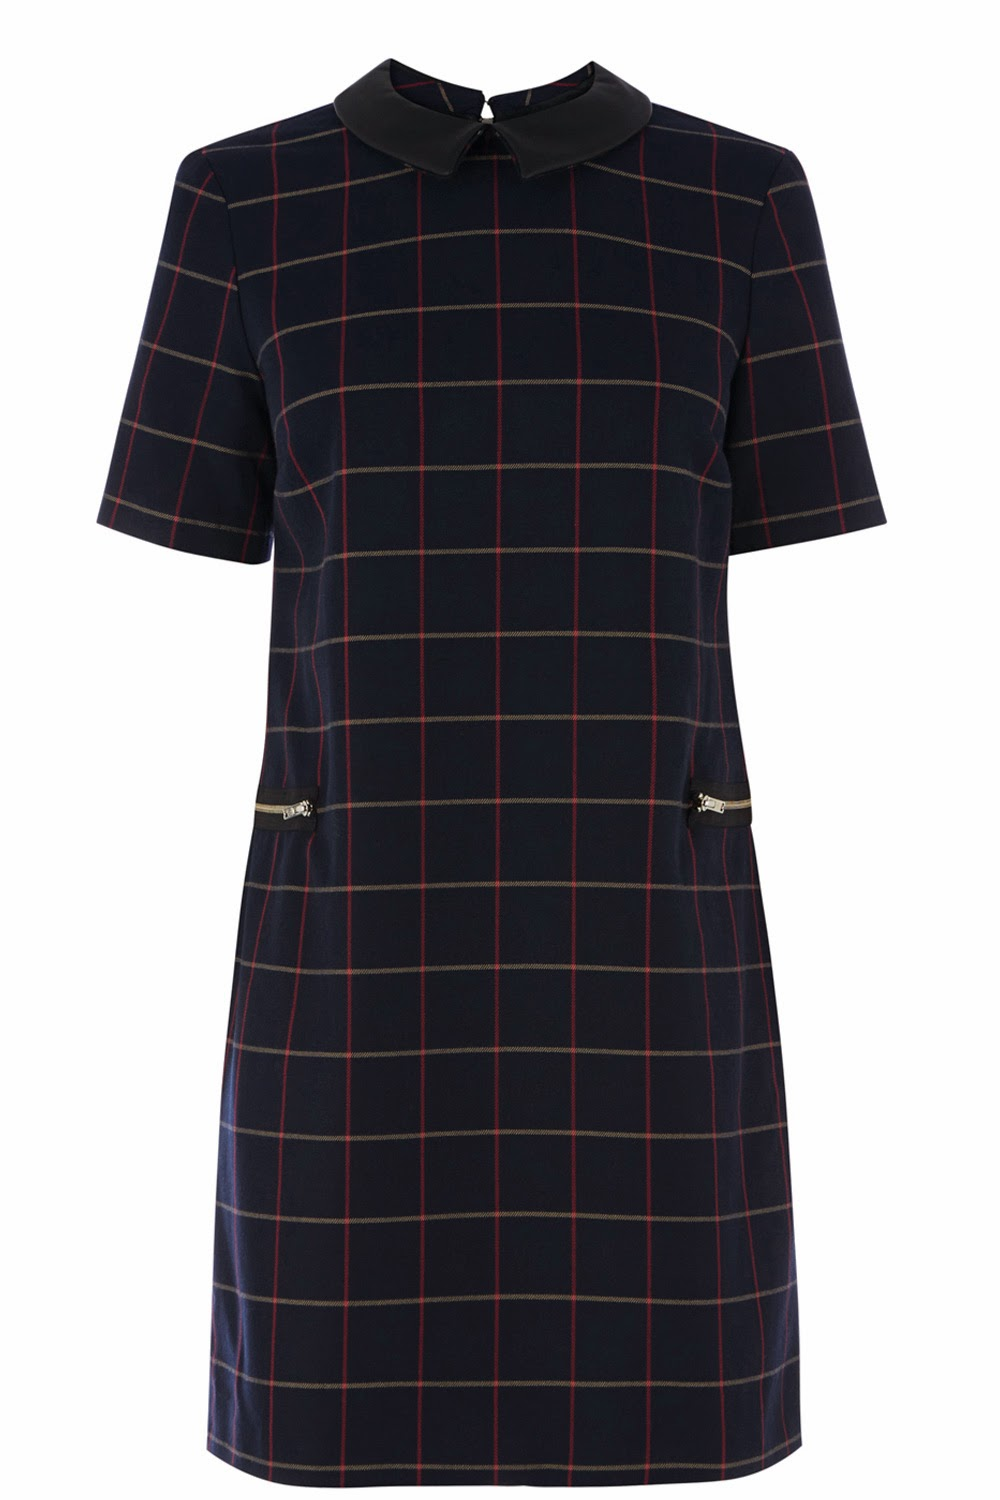 navy square print dress